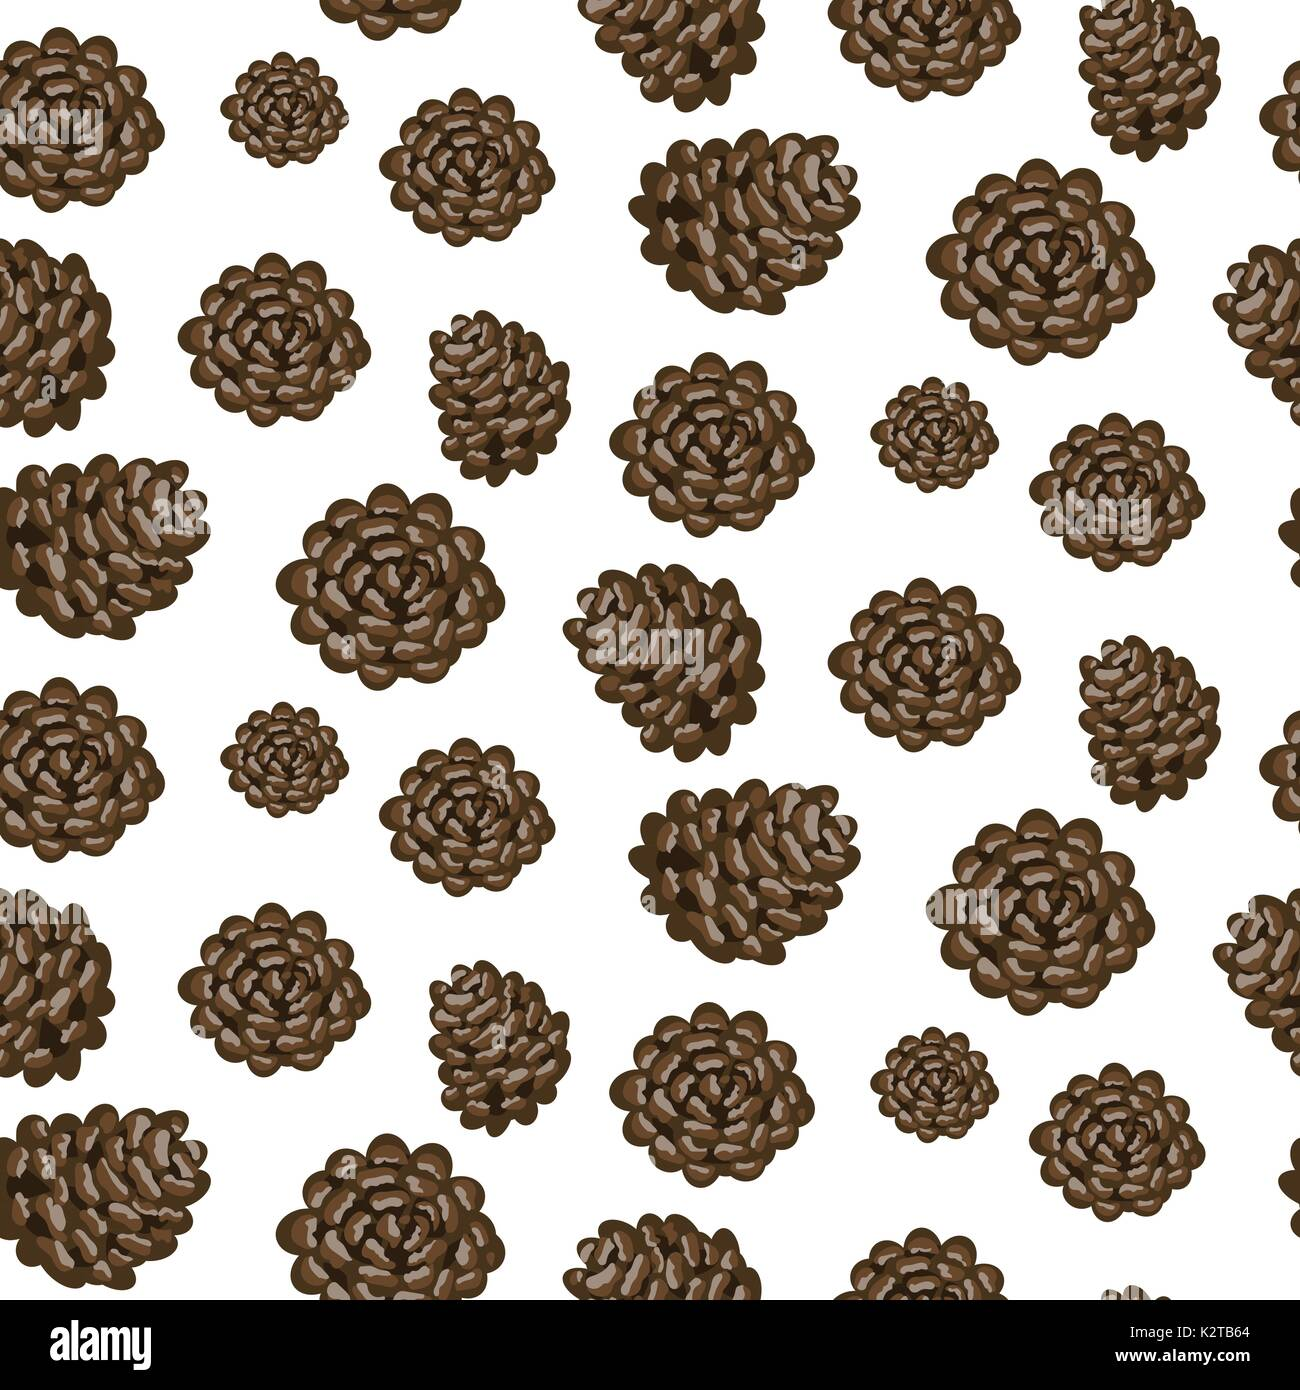 Fir cones seamless vector white background pattern. - Stock Vector